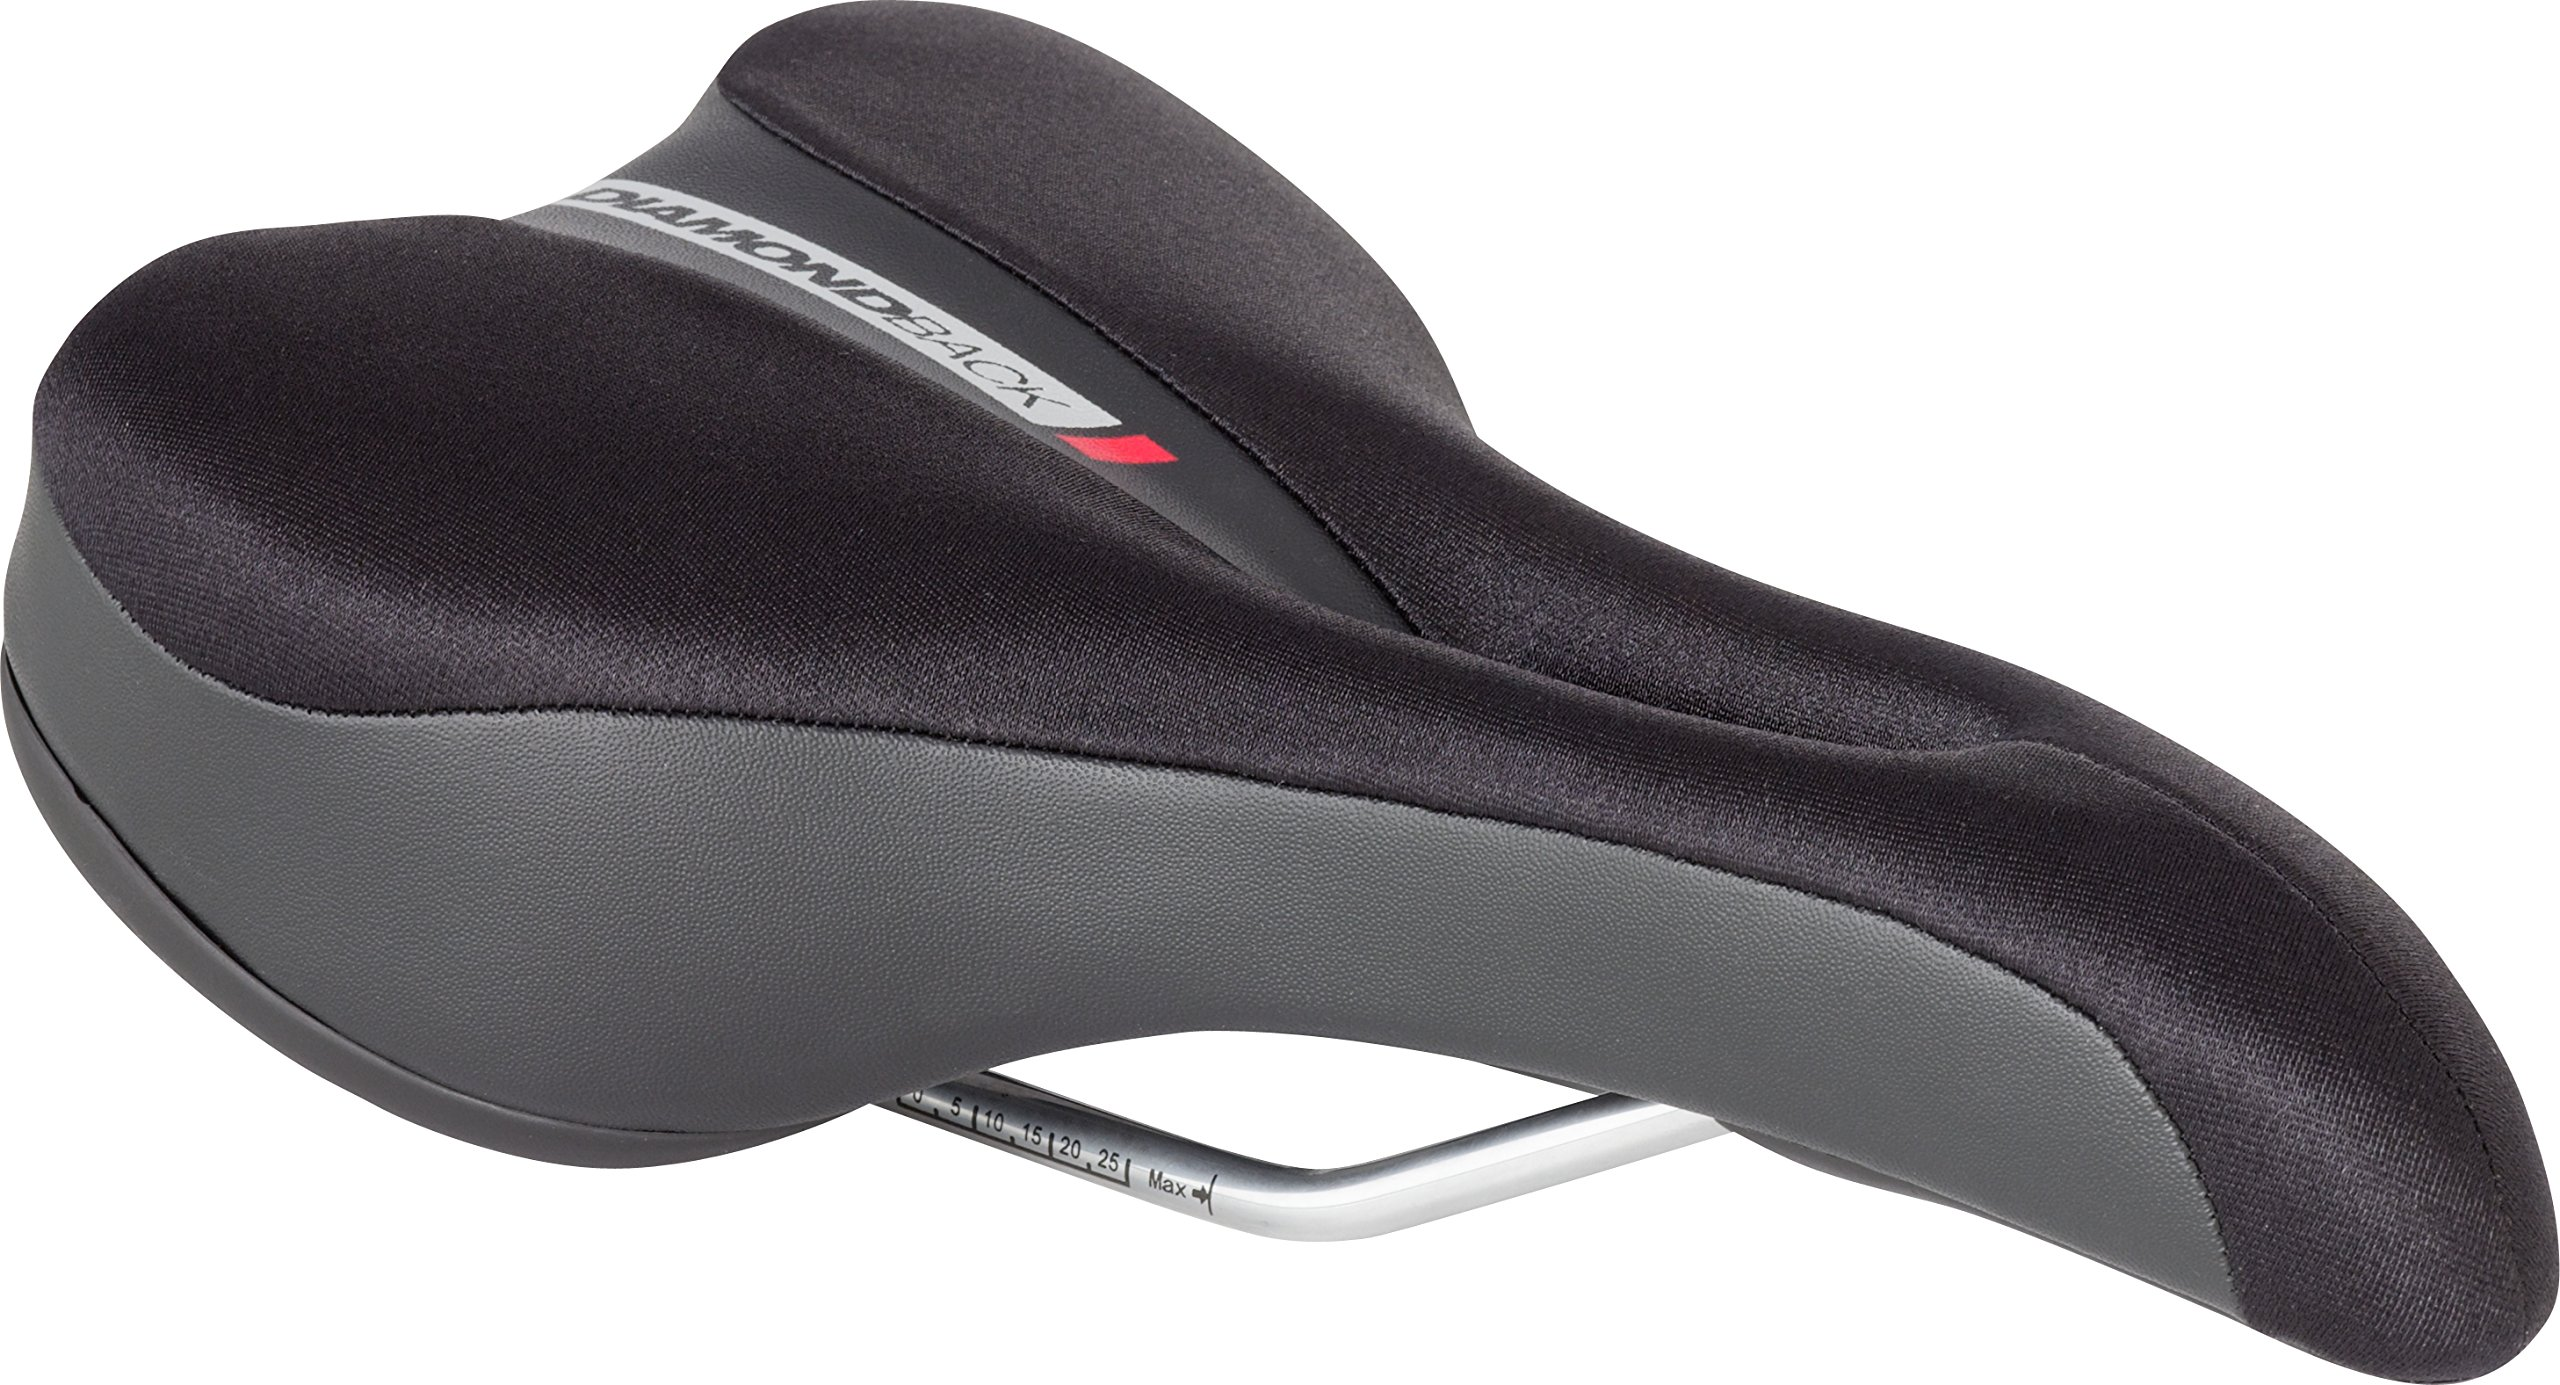 Diamondback Men's Hybrid Lycra Top Bicycle Saddle, Black